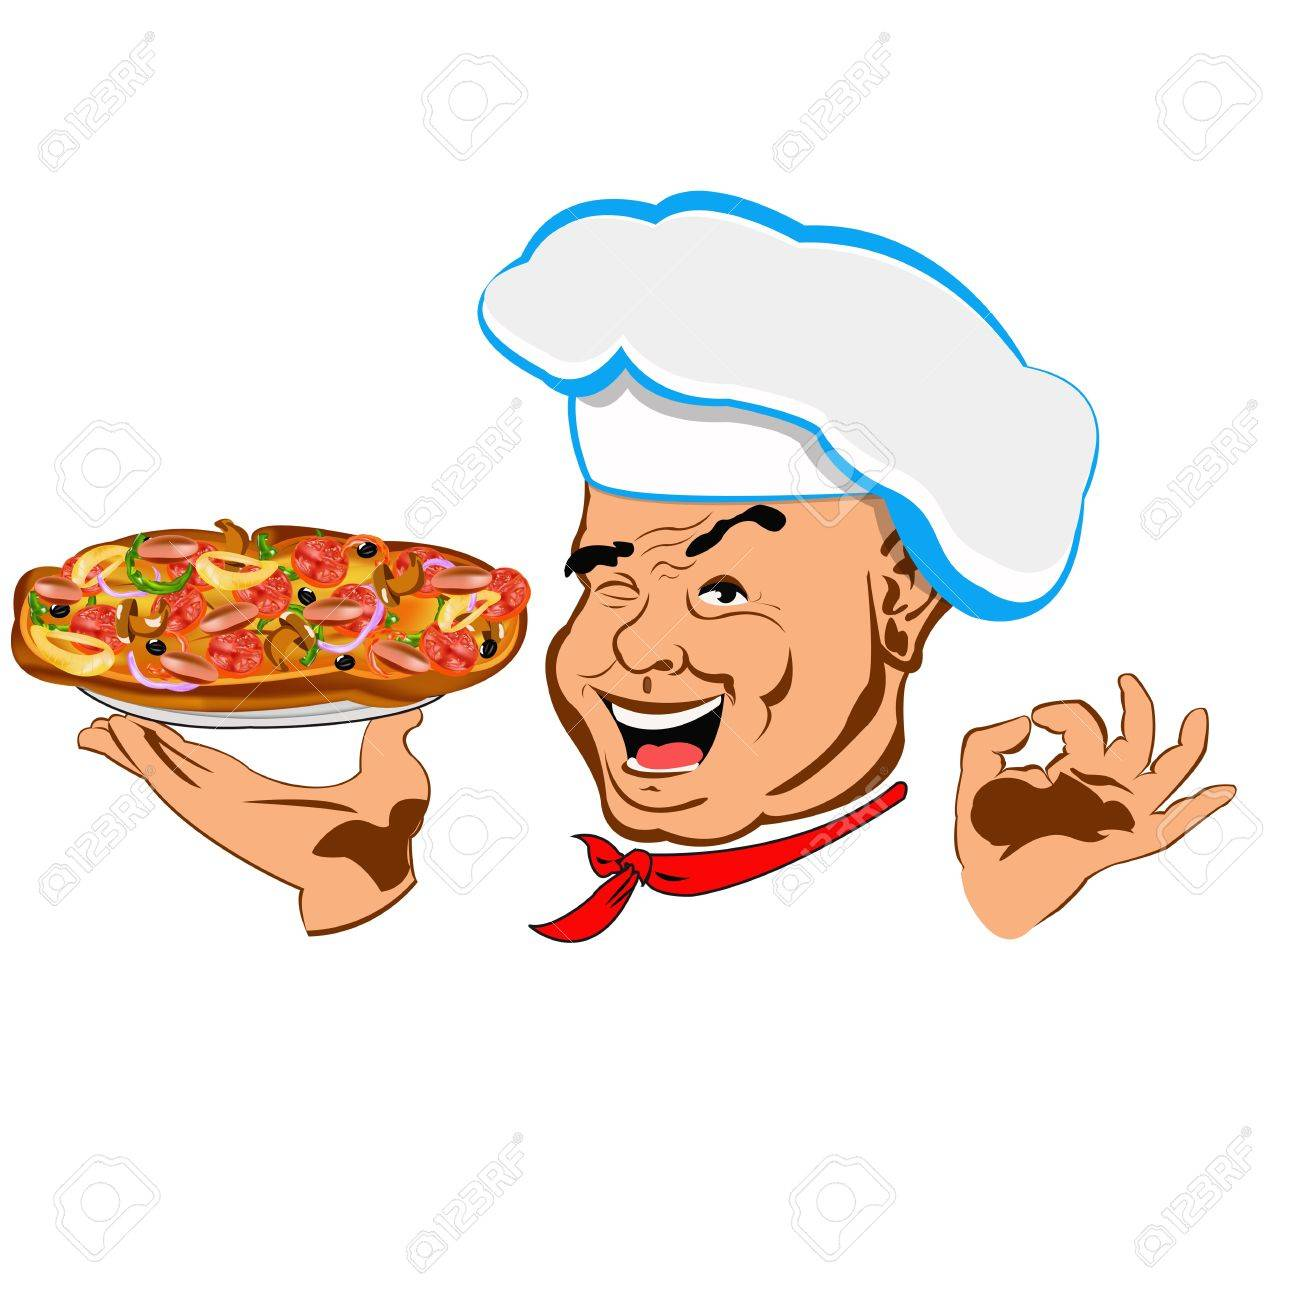 Chef and big pizza Face Restaurant business - 17792298